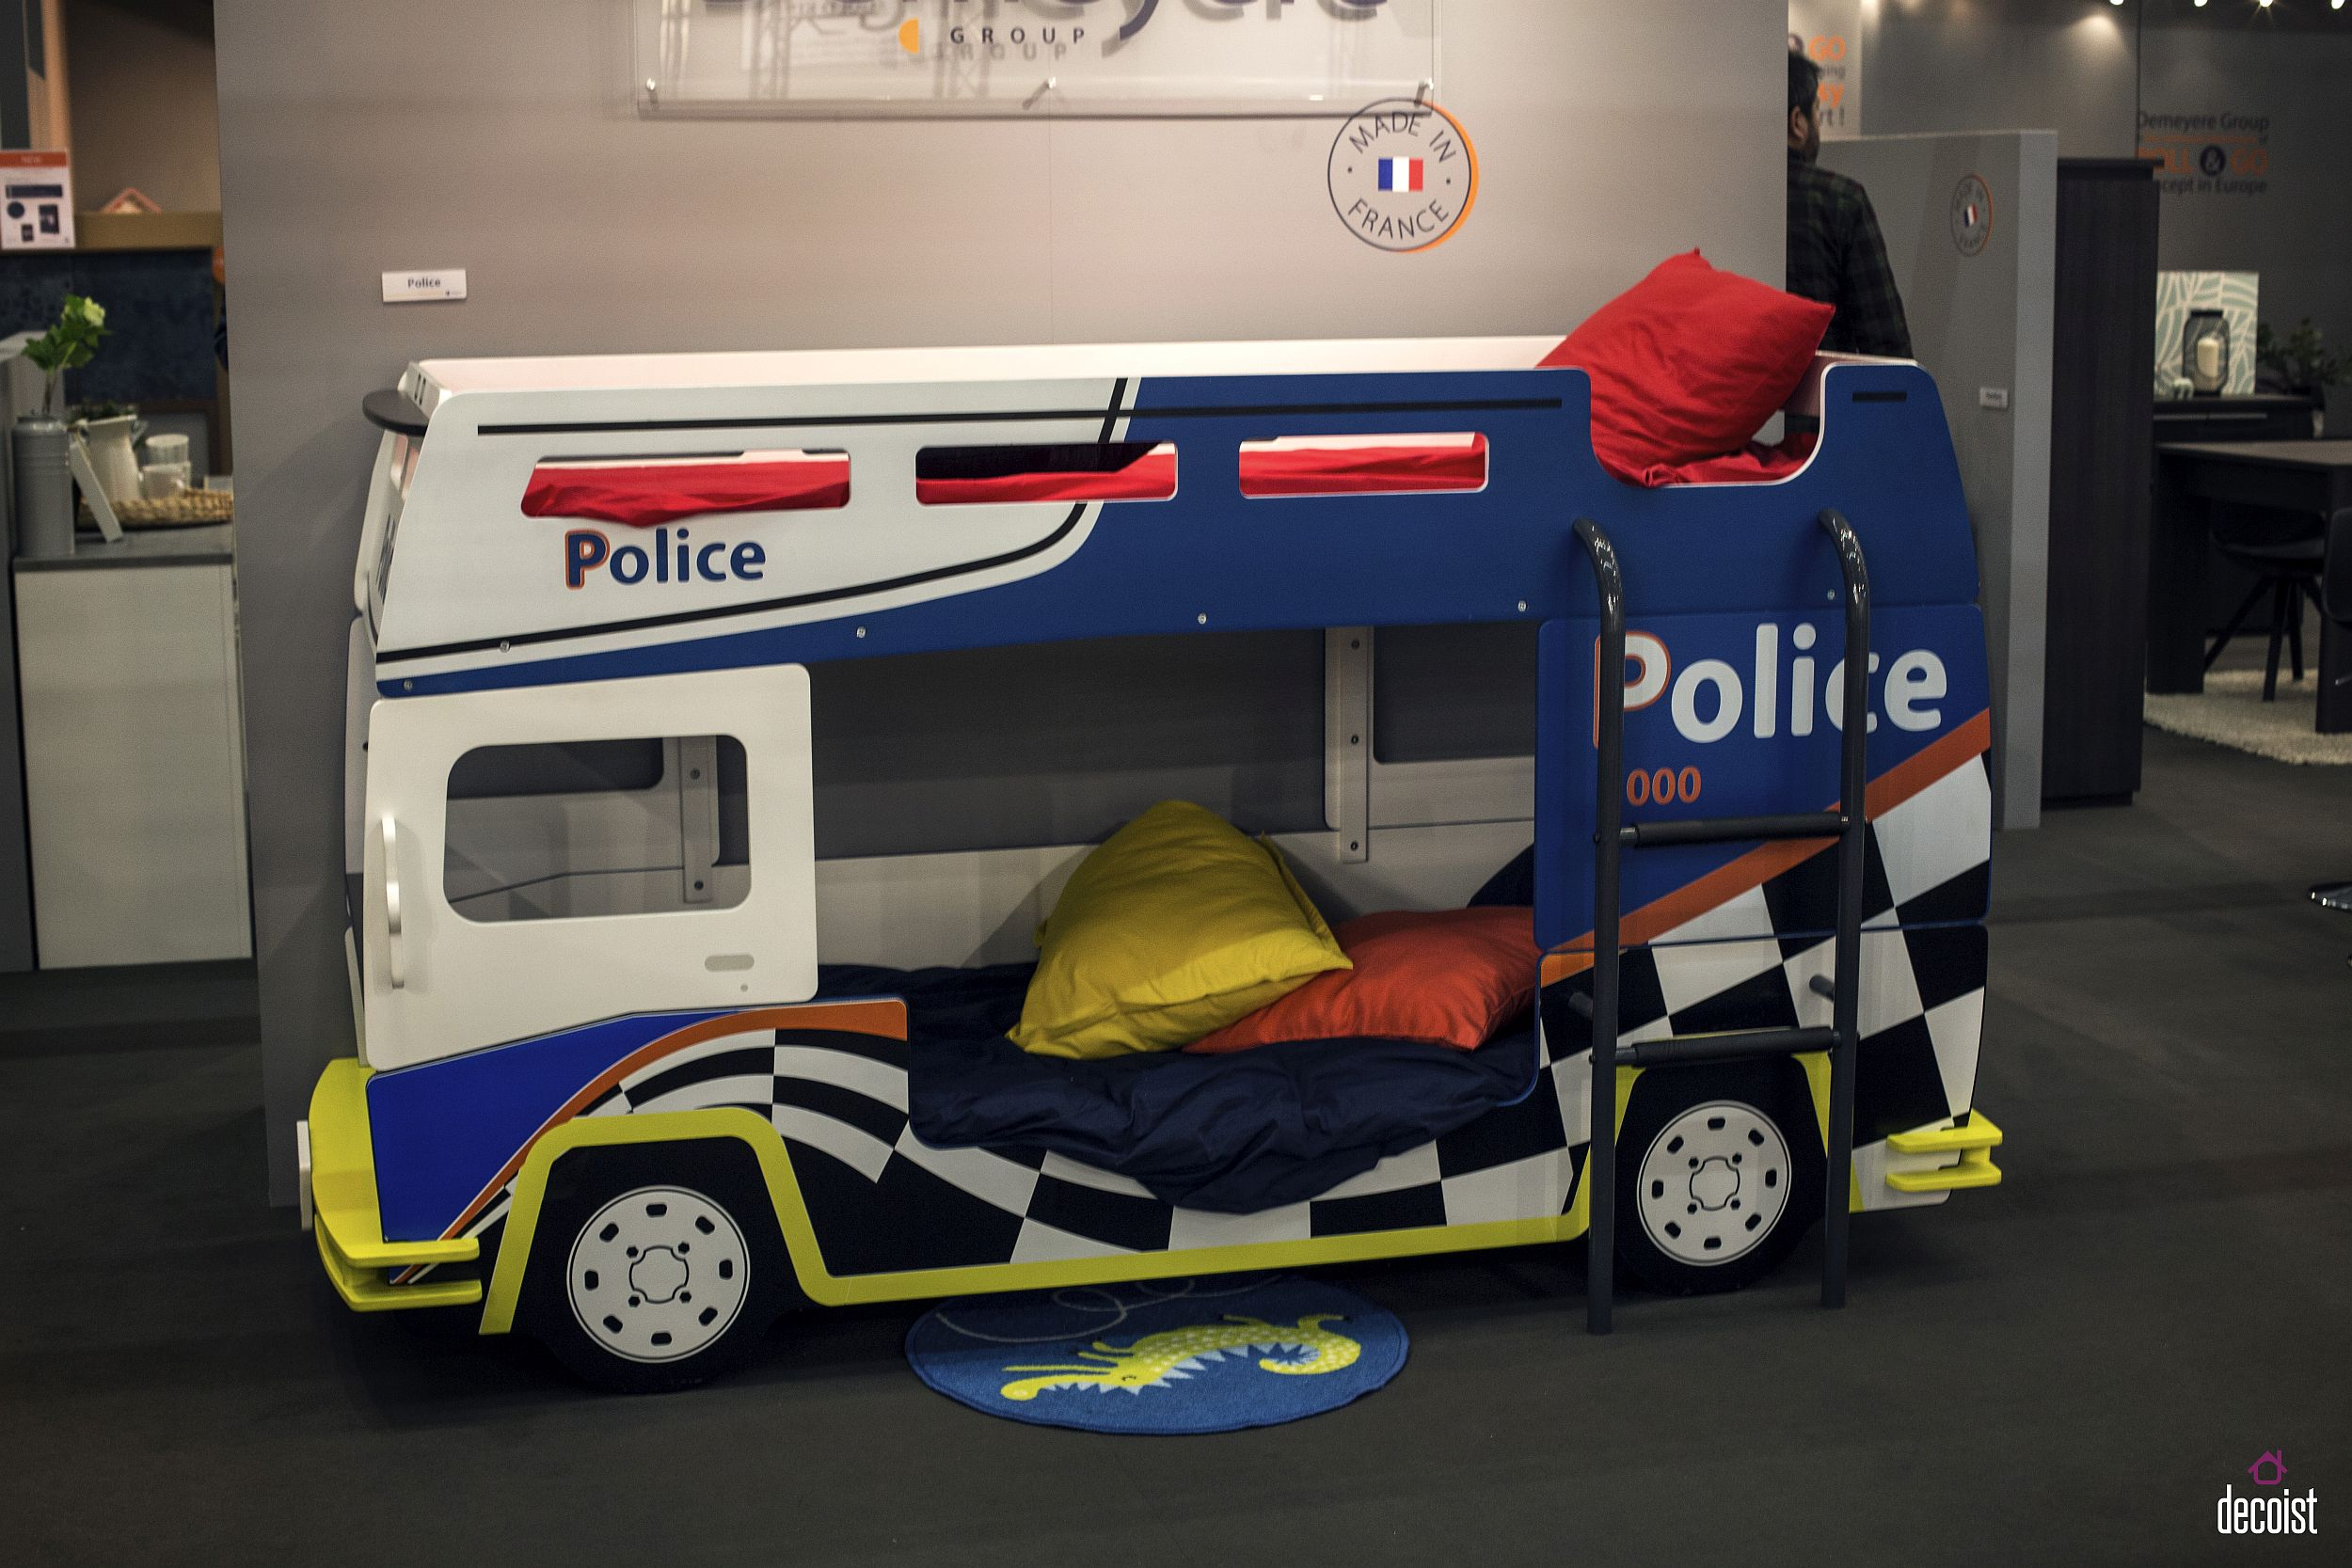 Police van style kids' bunk bed adds plenty of color and playfulness to the kids' room